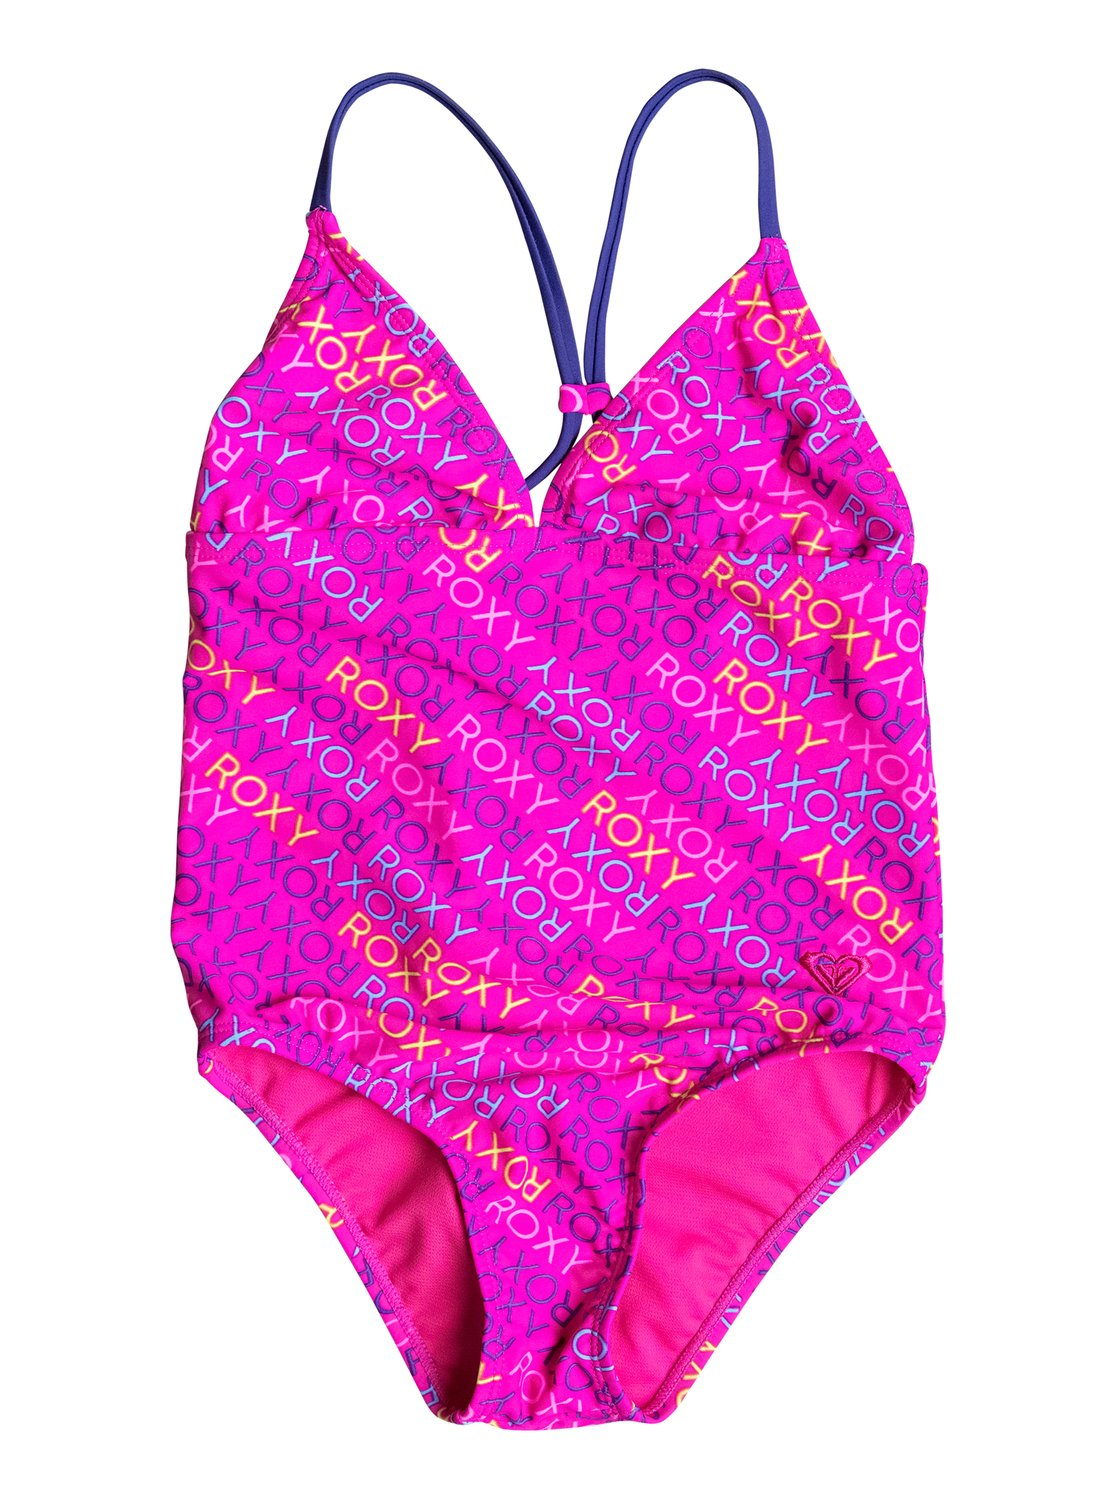 e4d0222eb30c6 0 Girls 2-6 Roxy Ready One-Piece Swimsuit PGRS68986 Roxy